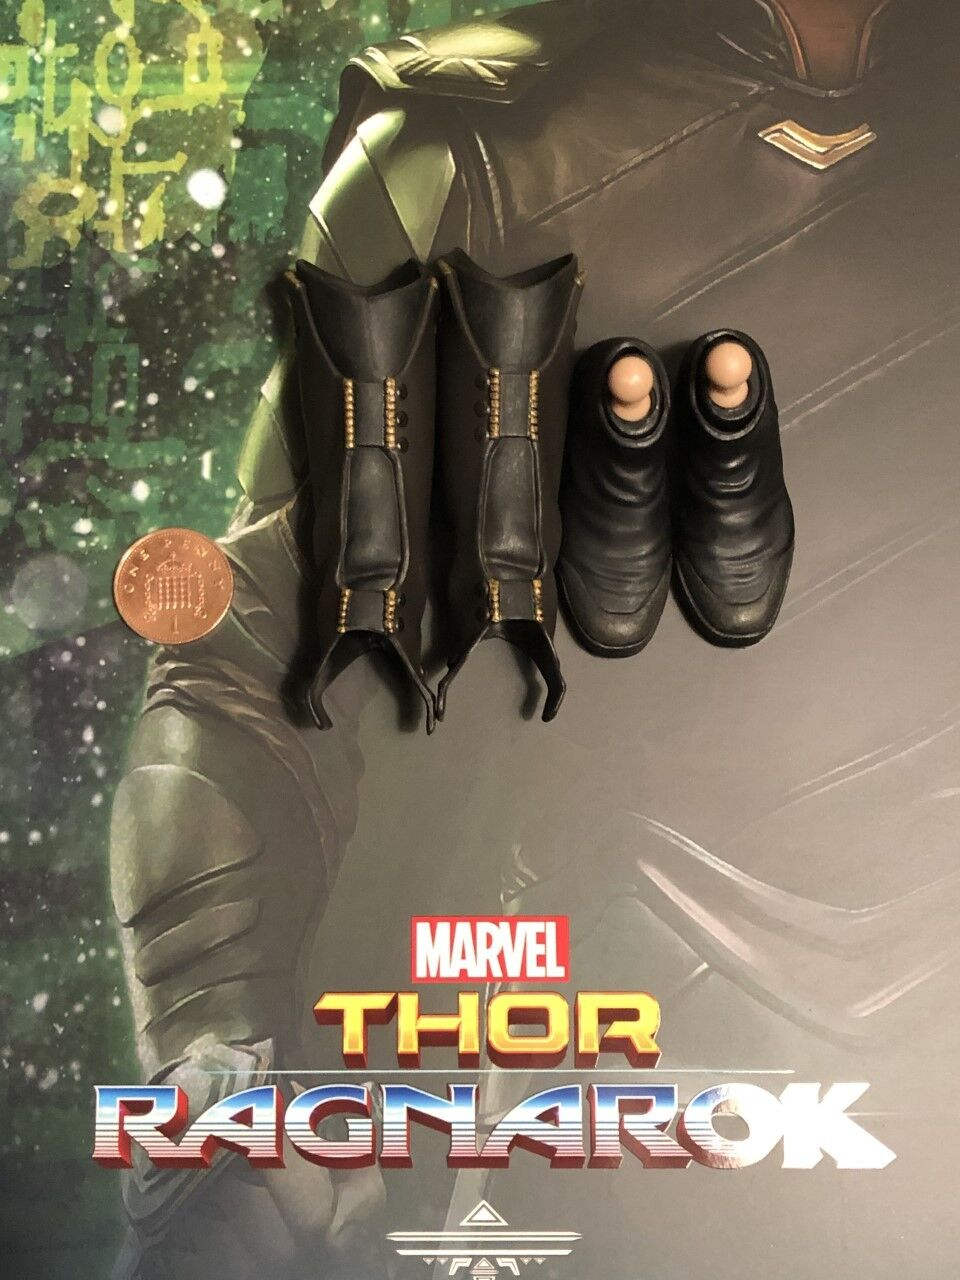 Hot Toys Thor Ragnarok Loki MMS472 Tall Boots & Foot Pegs loose 1 6th scale